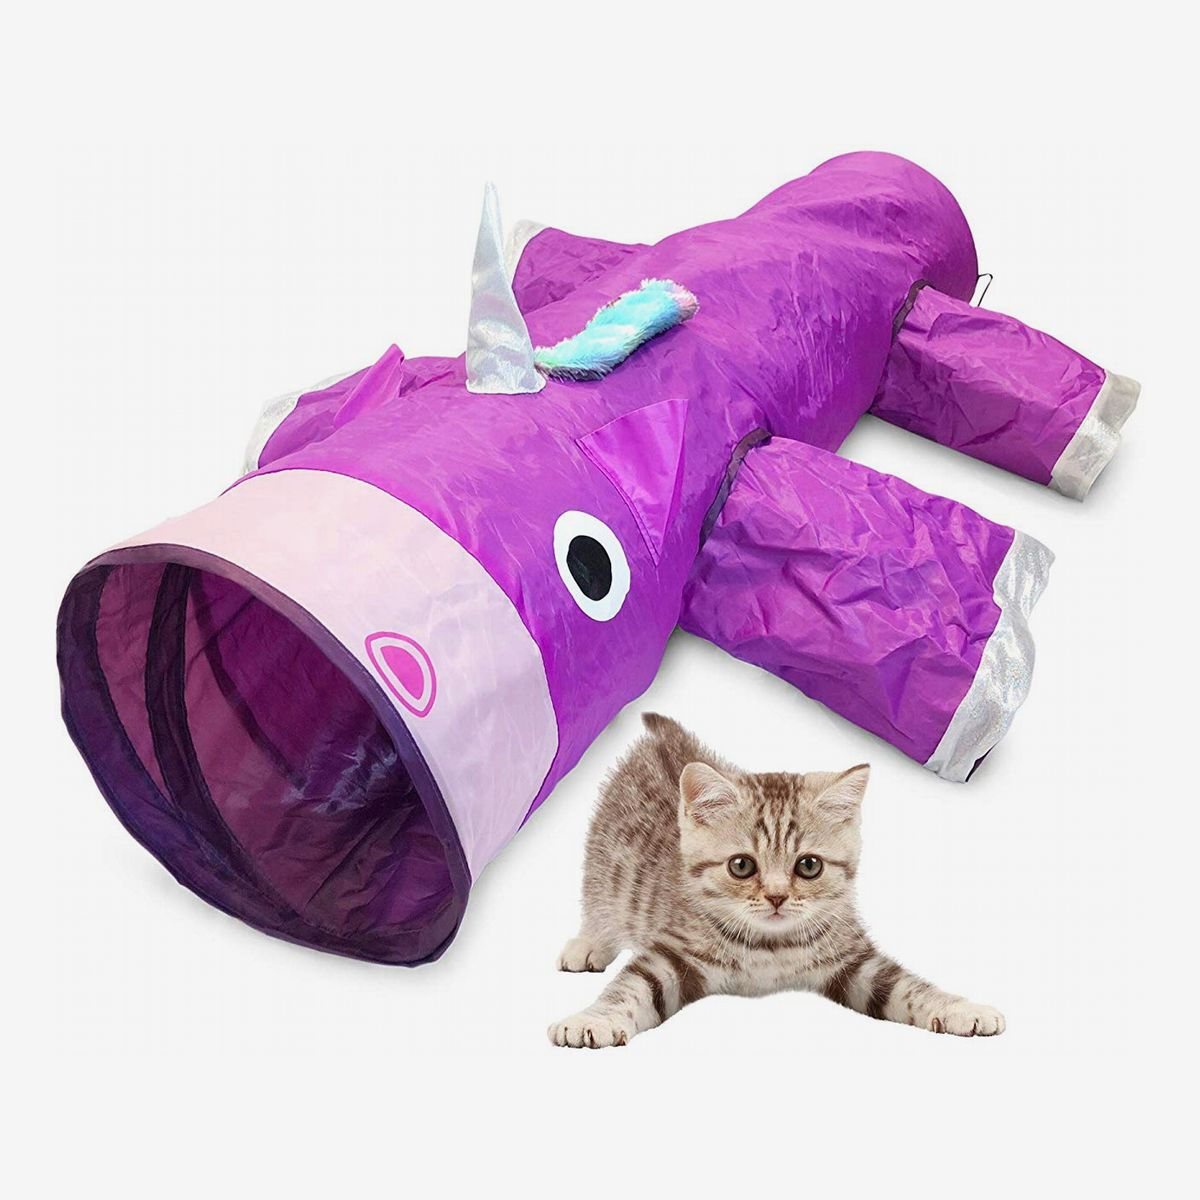 The 50 Best Gifts For Cat Lovers 2021 The Strategist New York Magazine